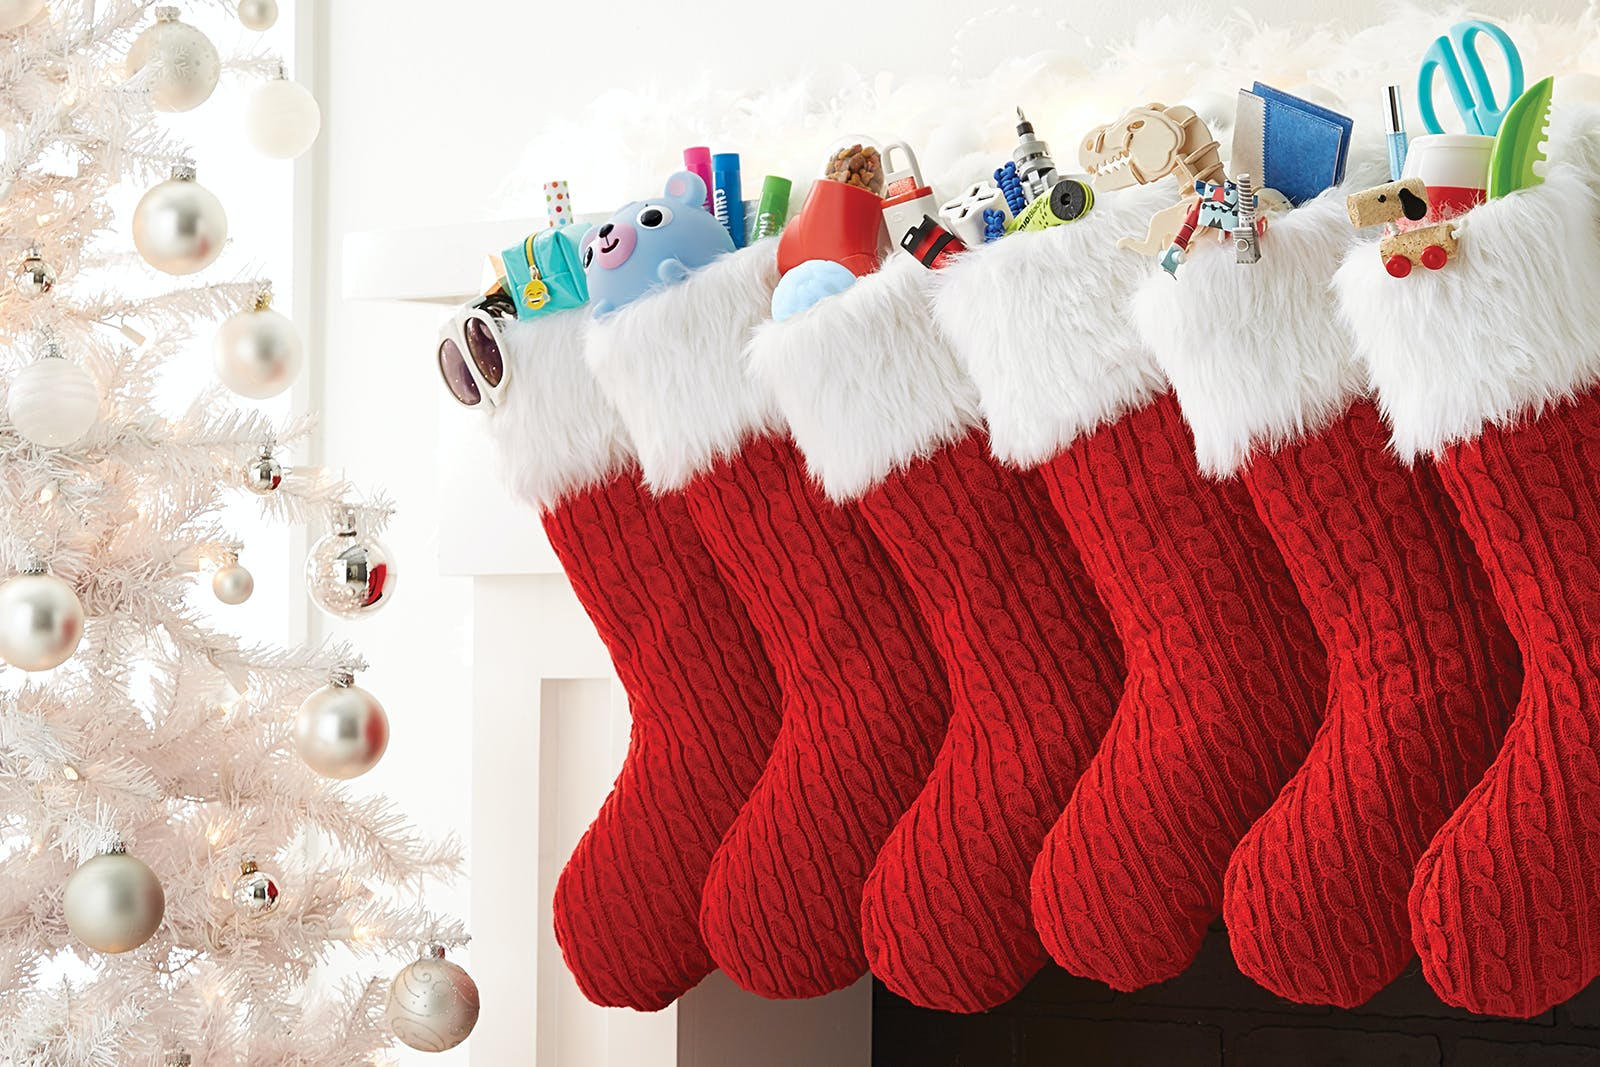 Holiday Grab Bag Gift Ideas Christmas White Elephant Gift Exchanges Stocking Stuffers Gag Gift Ideas Partyideapros Com